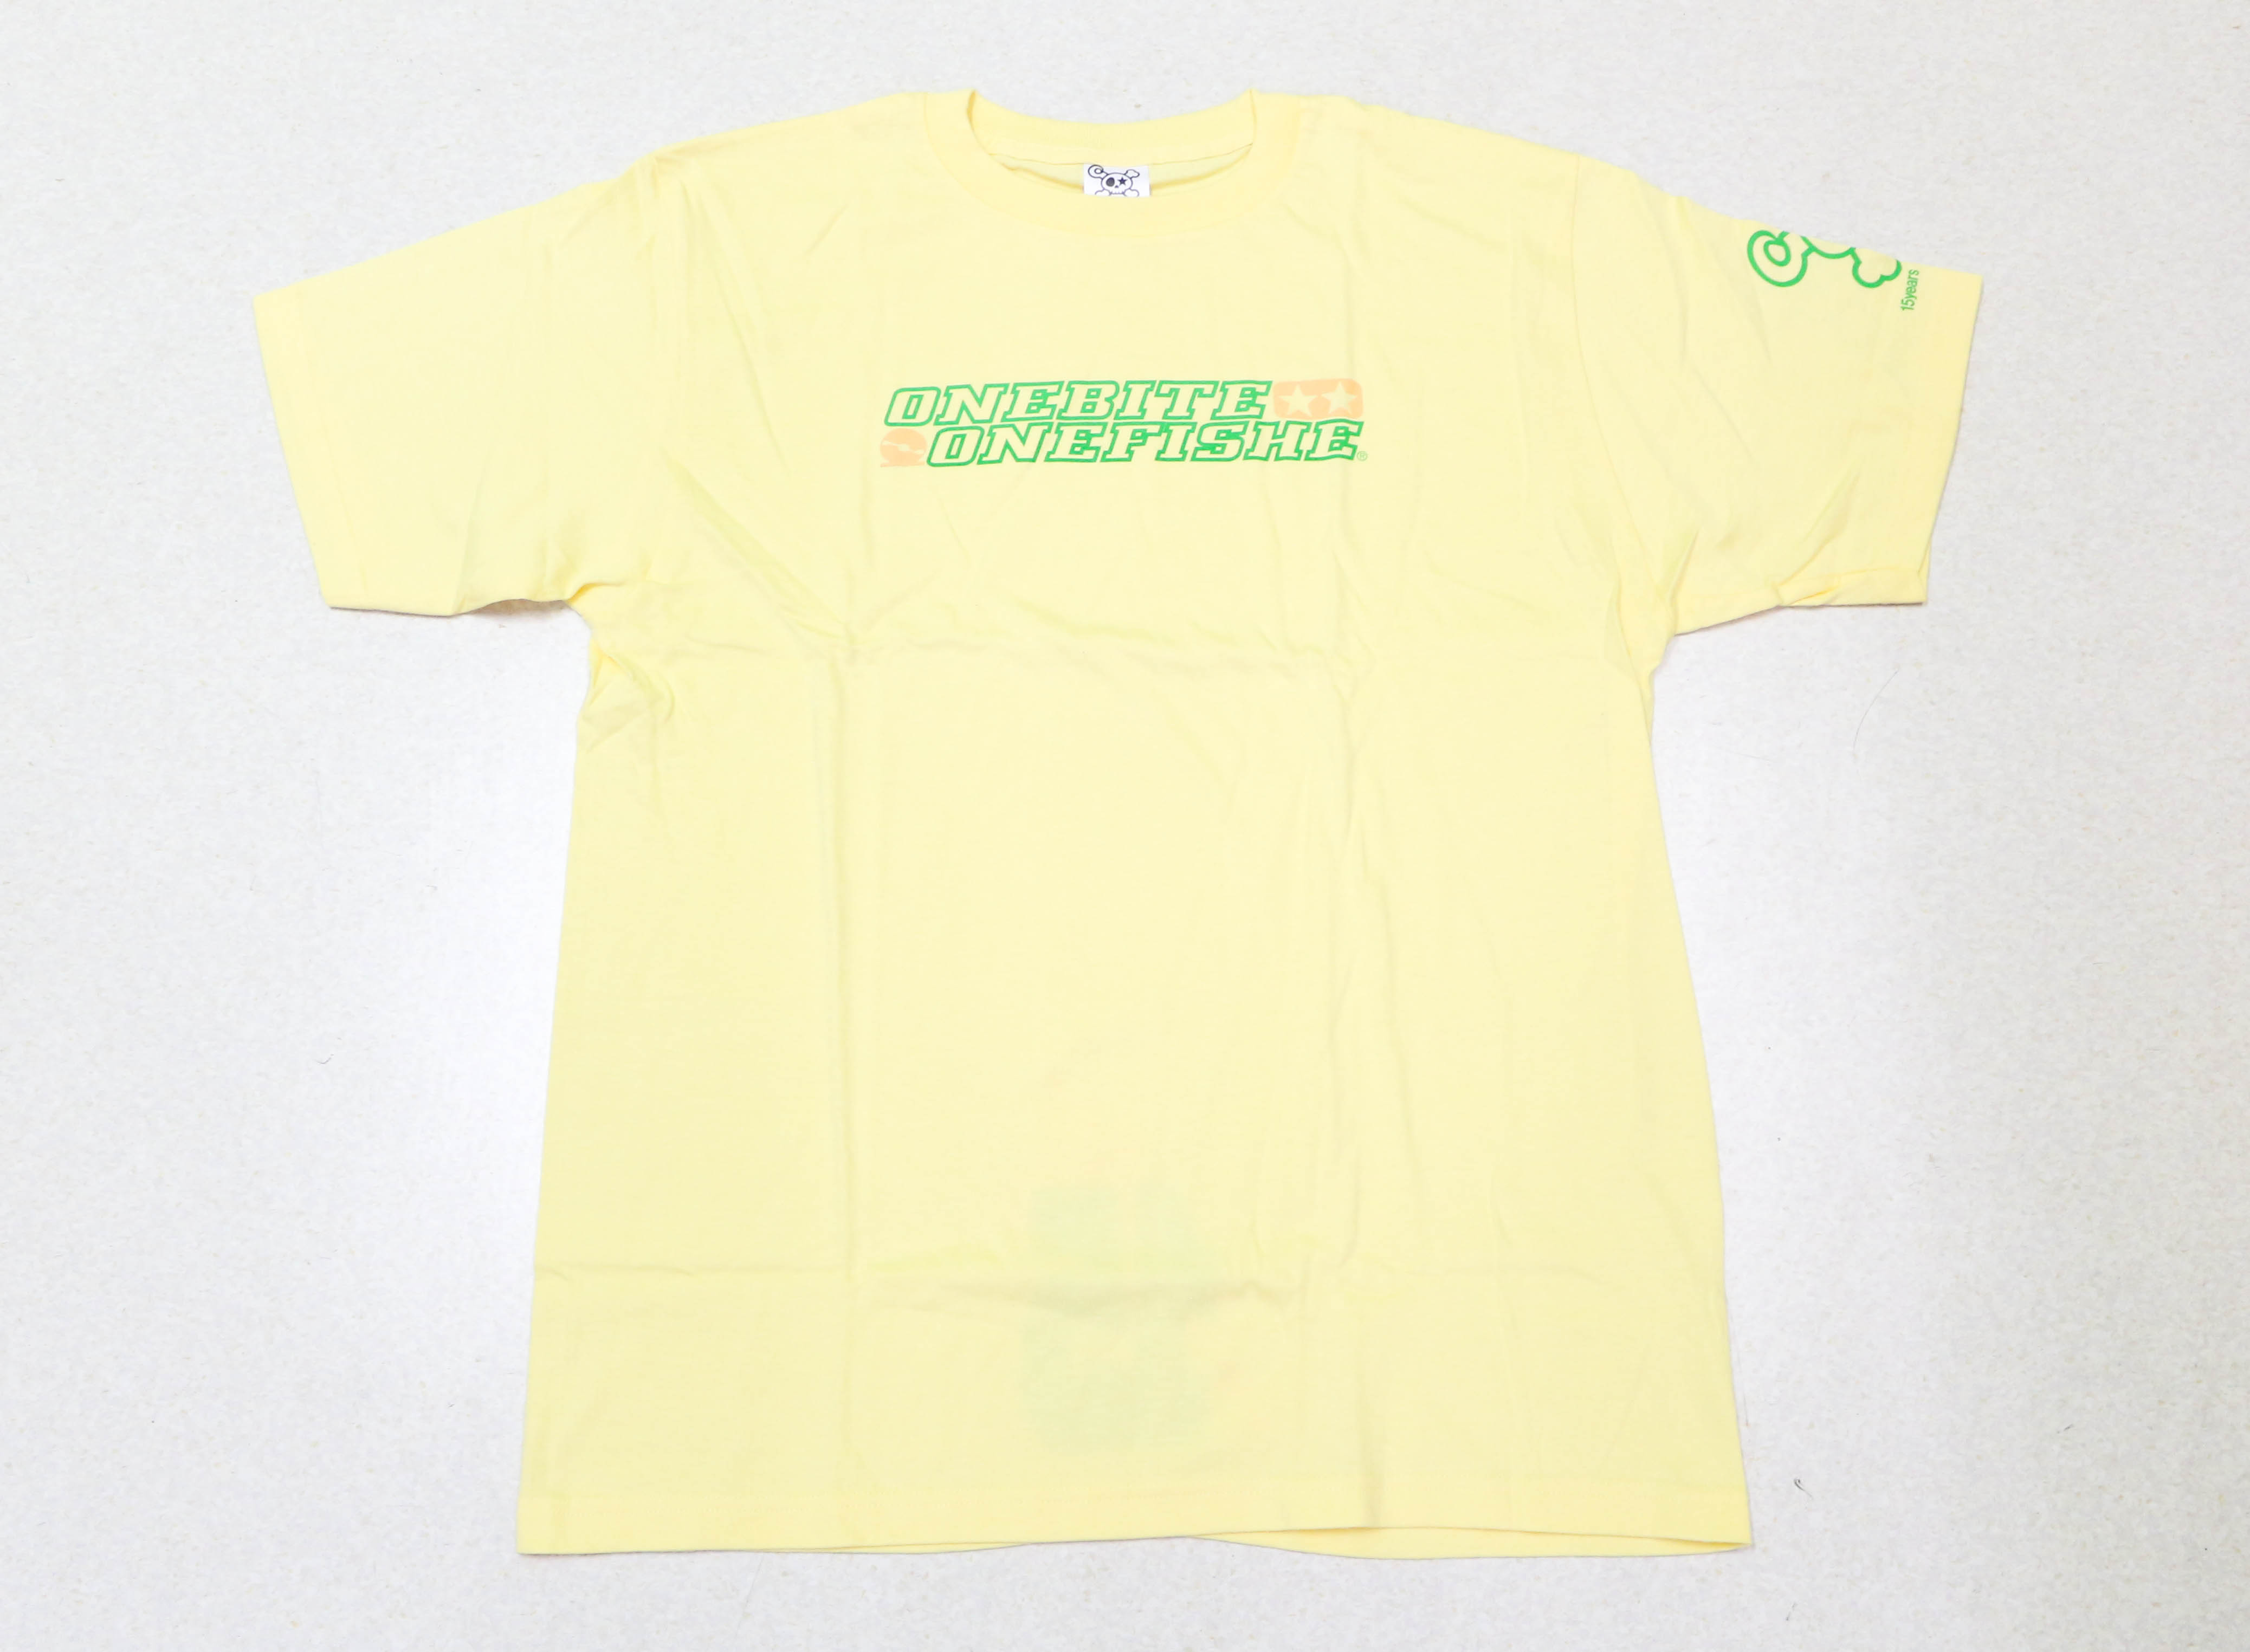 Sale One Bite One Fish T-Shirt OBOF-15 OriLogo Short Sleeve Yellow XL (0097)